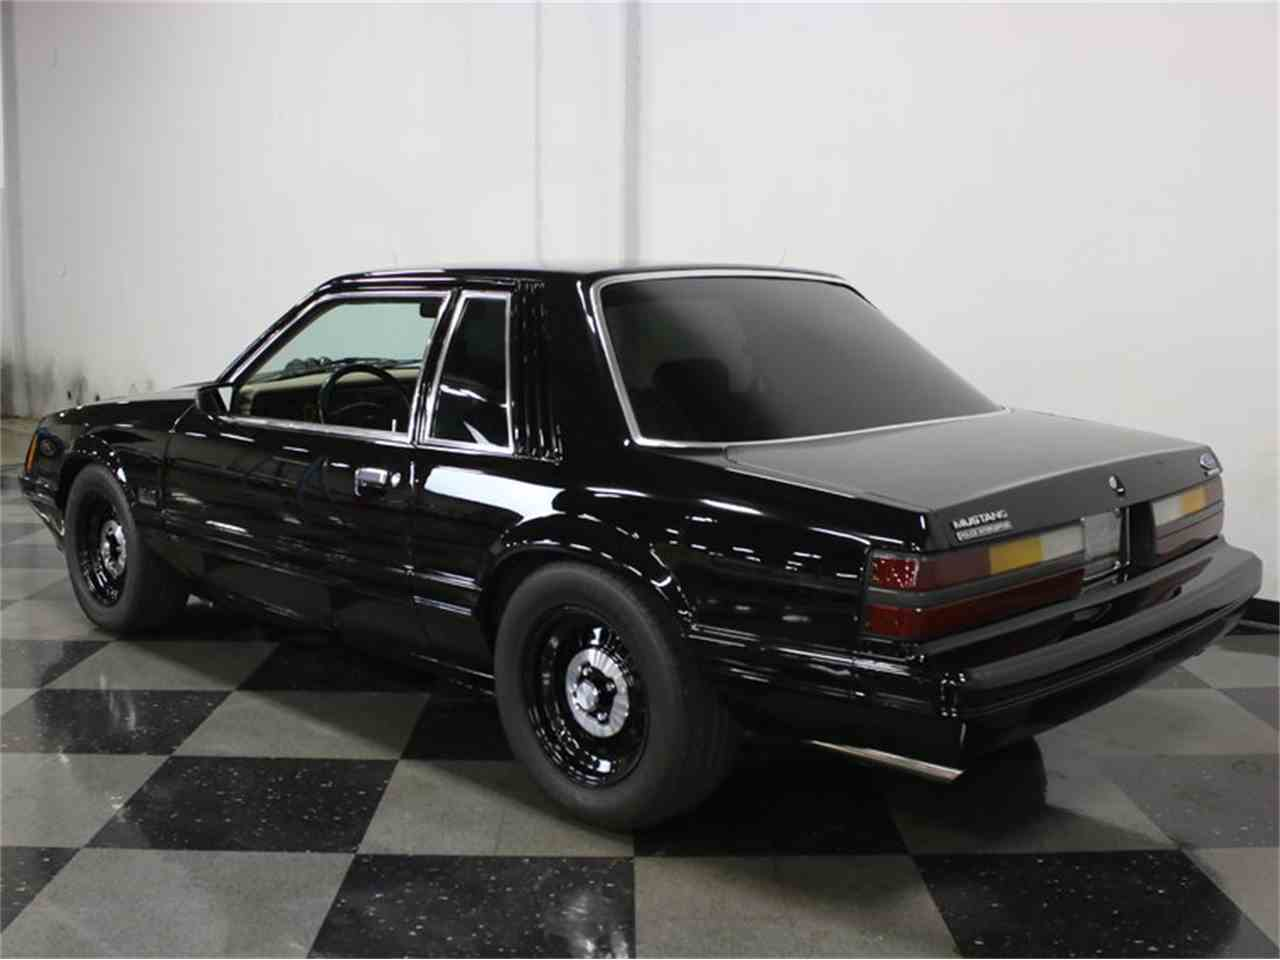 Large Picture of '86 Mustang SSP Interceptor Offered by Streetside Classics - Dallas / Fort Worth - JZNT